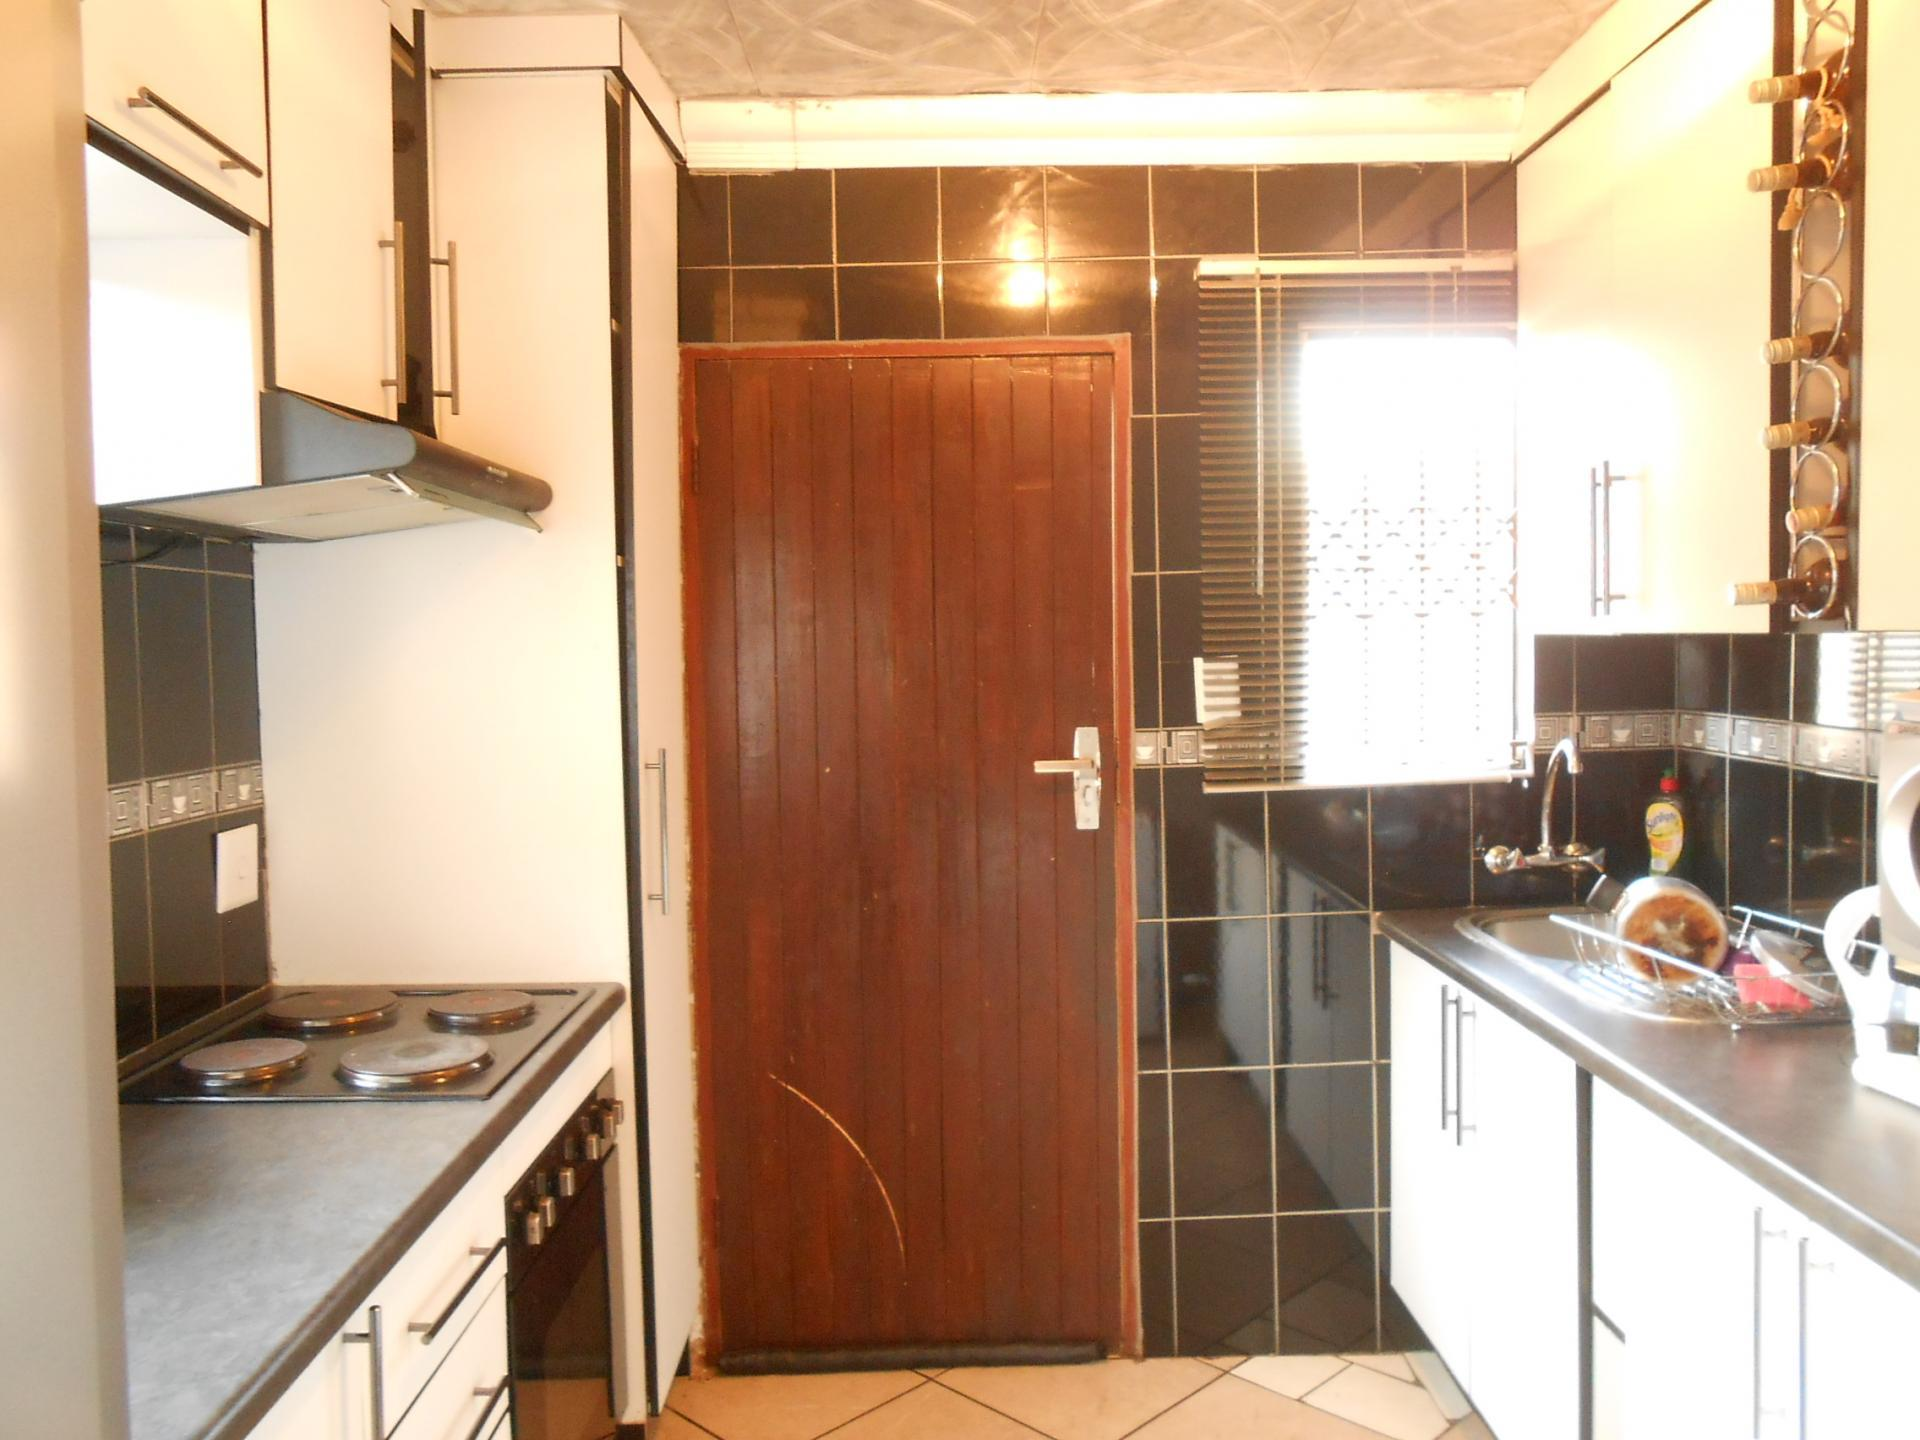 3 bedroom house for sale for sale in midrand private for Affordable kitchens gauteng